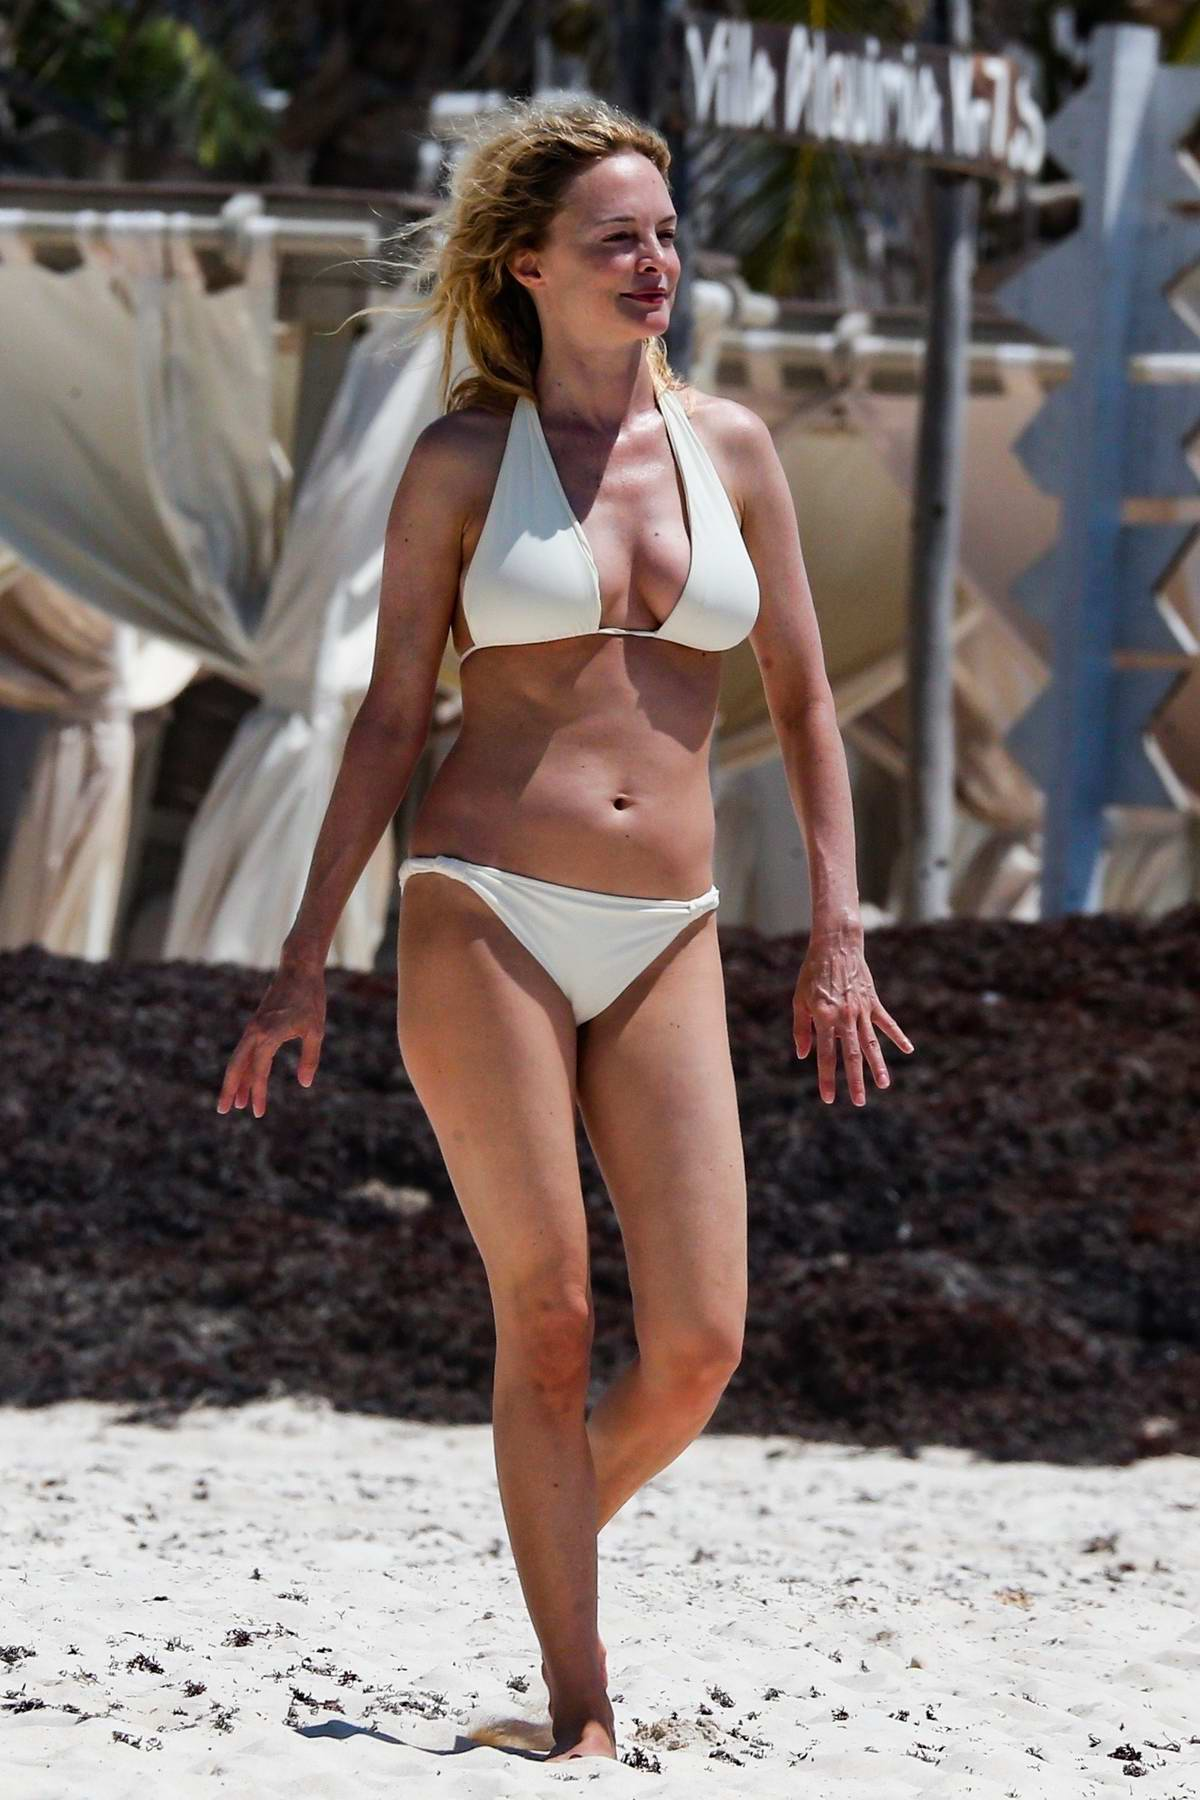 Heather Graham spotted in a white bikini at the beach as she enjoys her vacation in Tulum, Mexico